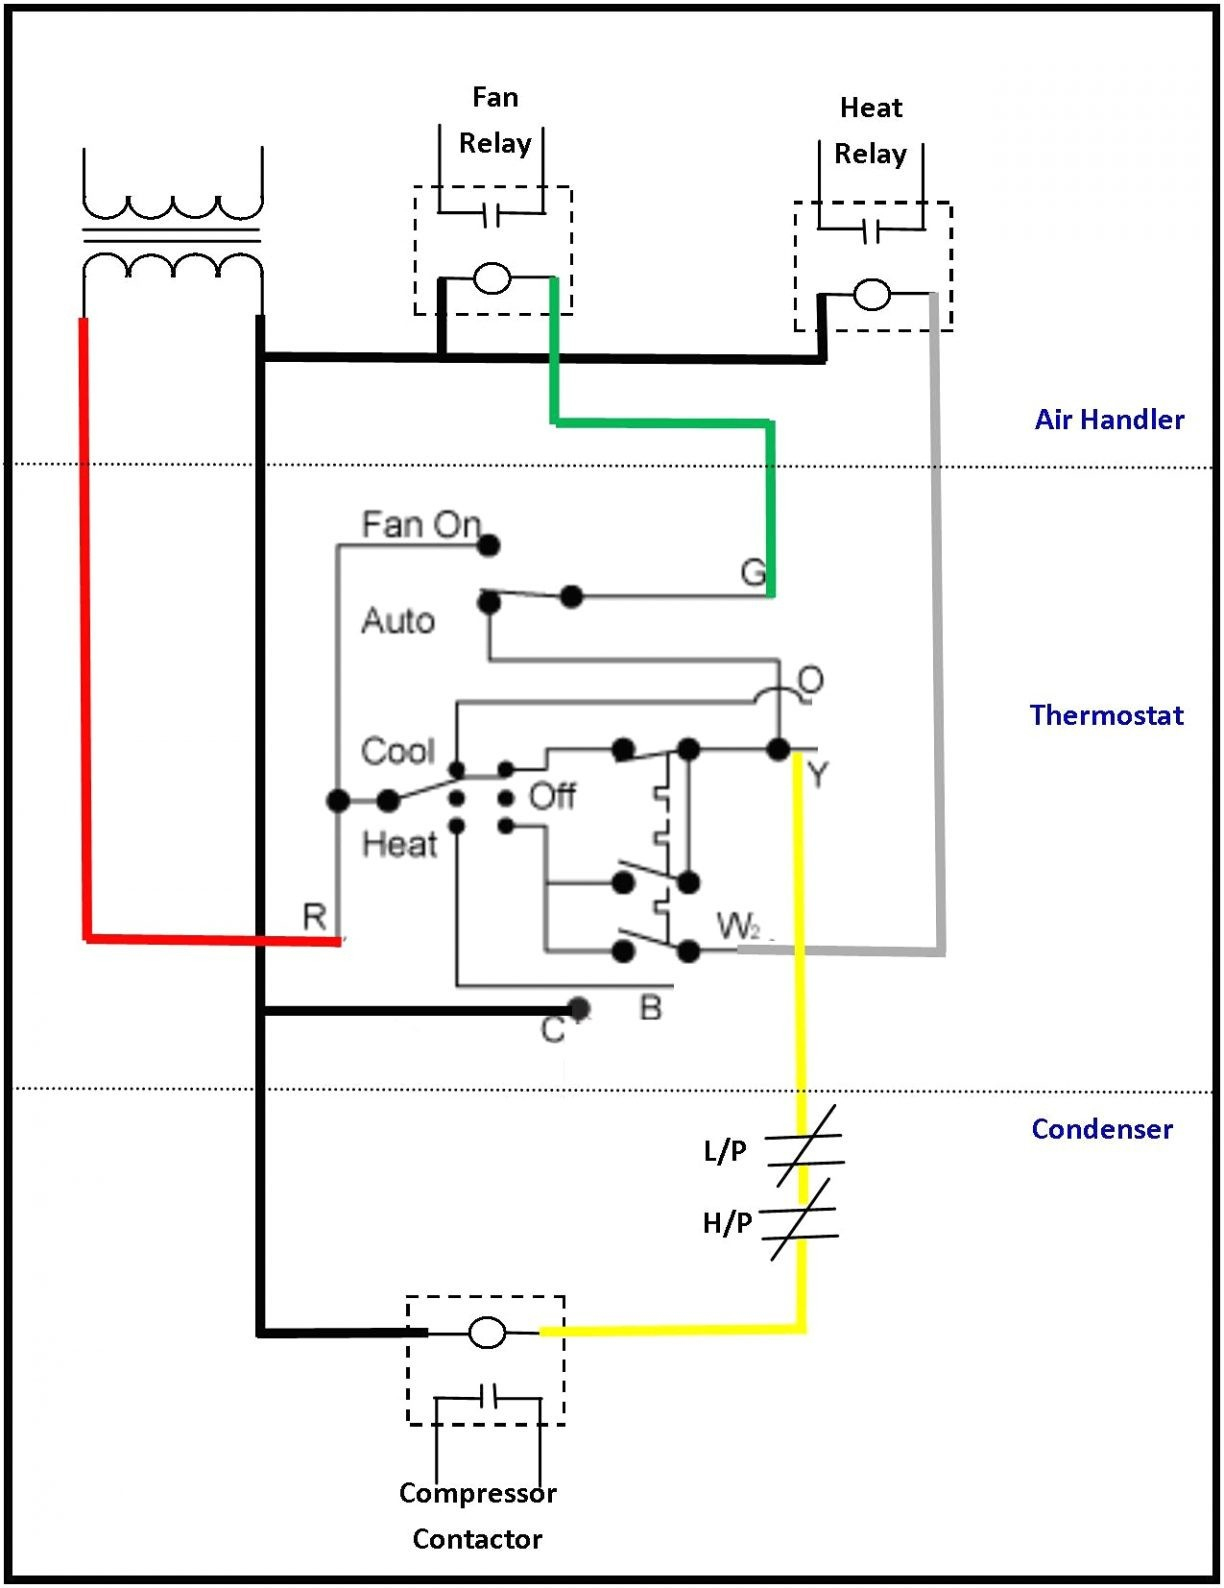 Coleman Rv Air Conditioner Capacitor Diagrams - Wiring Diagrams - Coleman Rv Air Conditioner Wiring Diagram